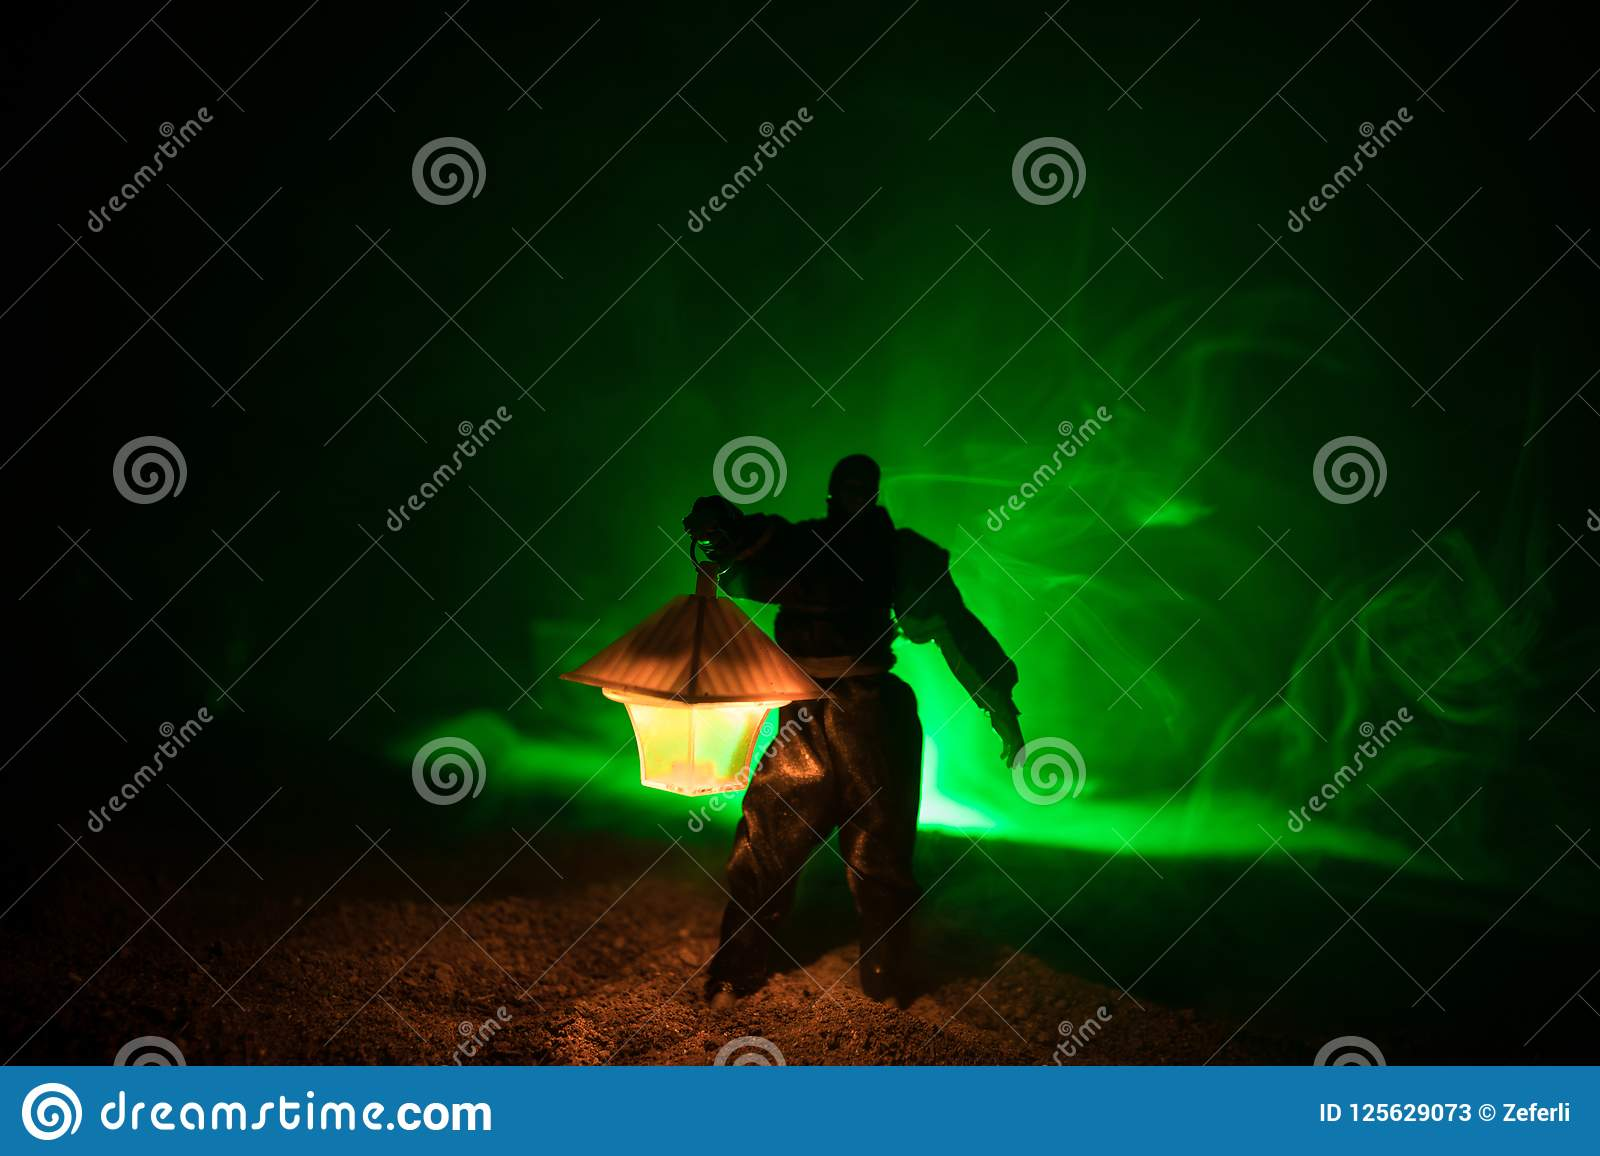 Man In Raincoat Coming From Dark Forest With Glowing Lantern